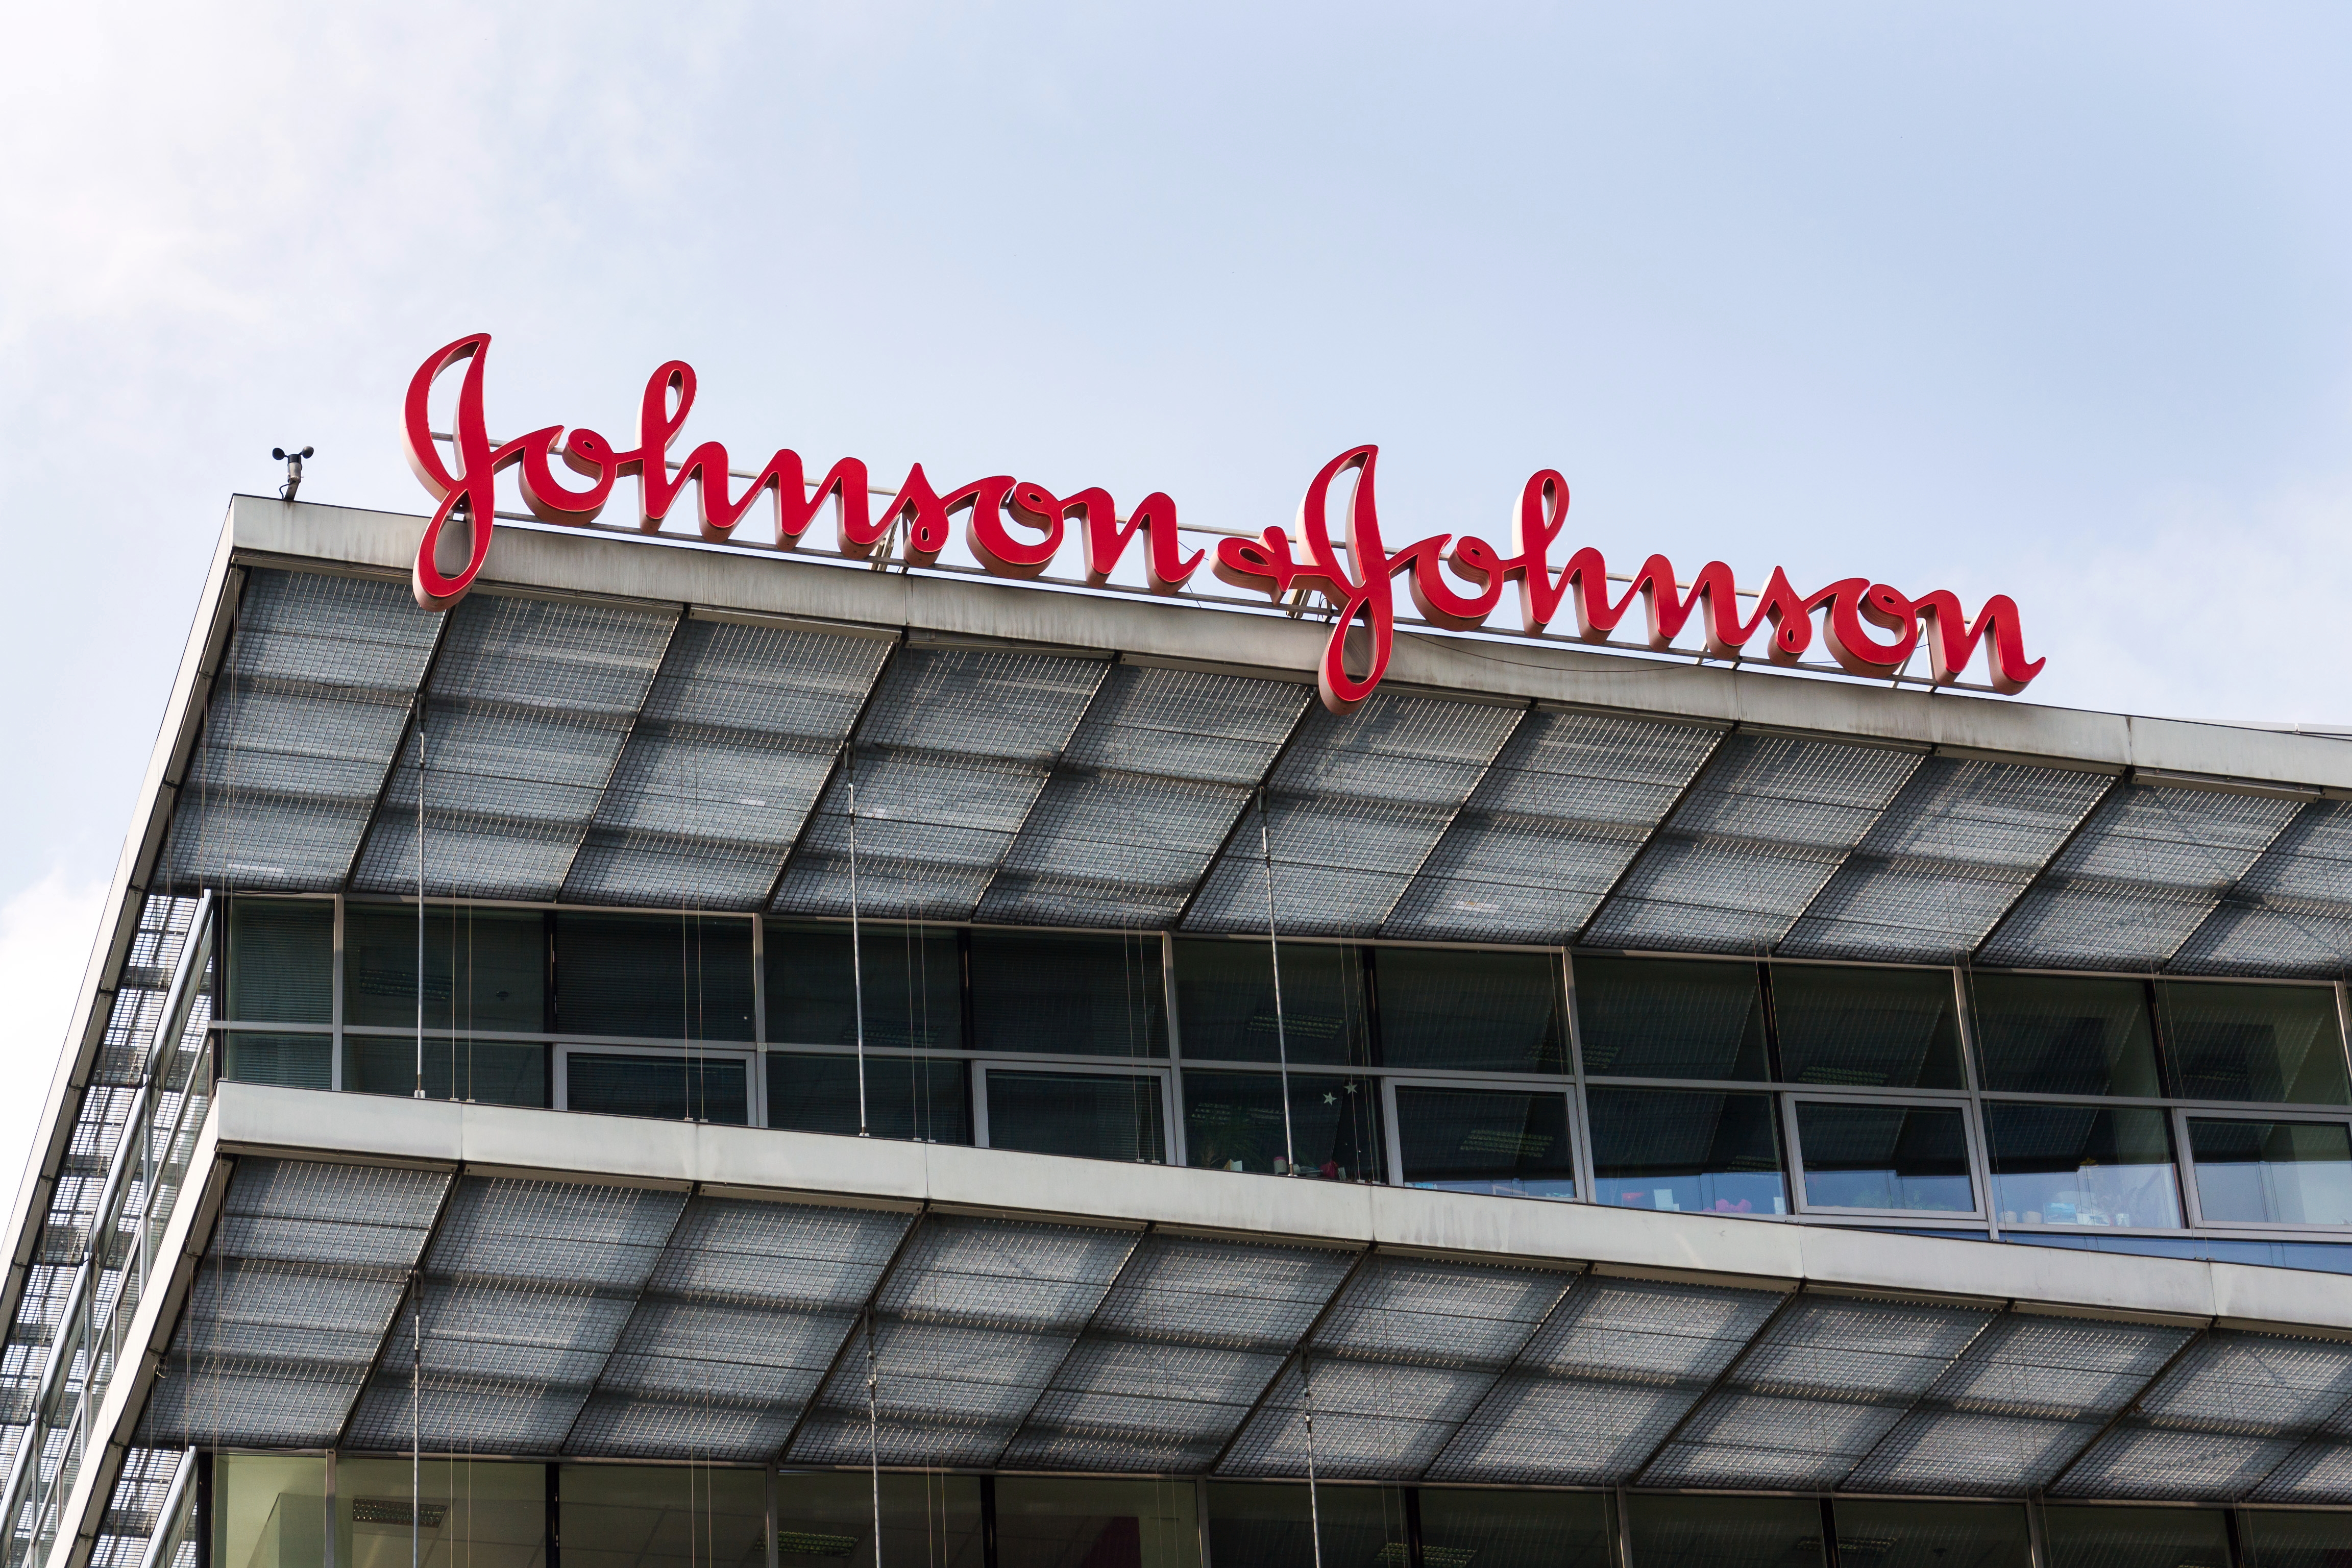 This is not the first time J&J has had problems with contaminated baby powder. (Shutterstock/josefkubes)